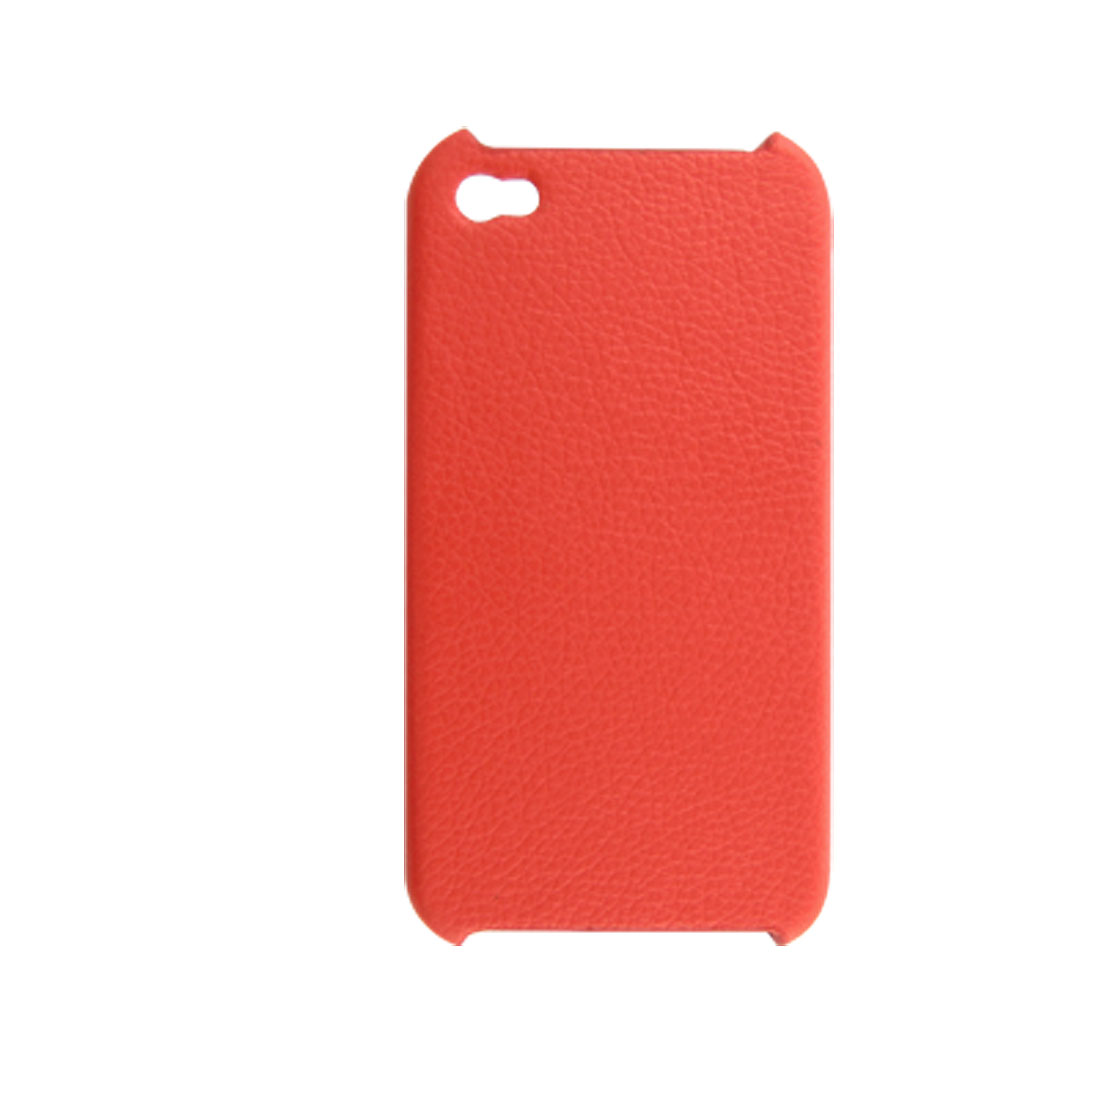 Red Faux Leather Coated Plastic Back Cover for Apple iPhone 4